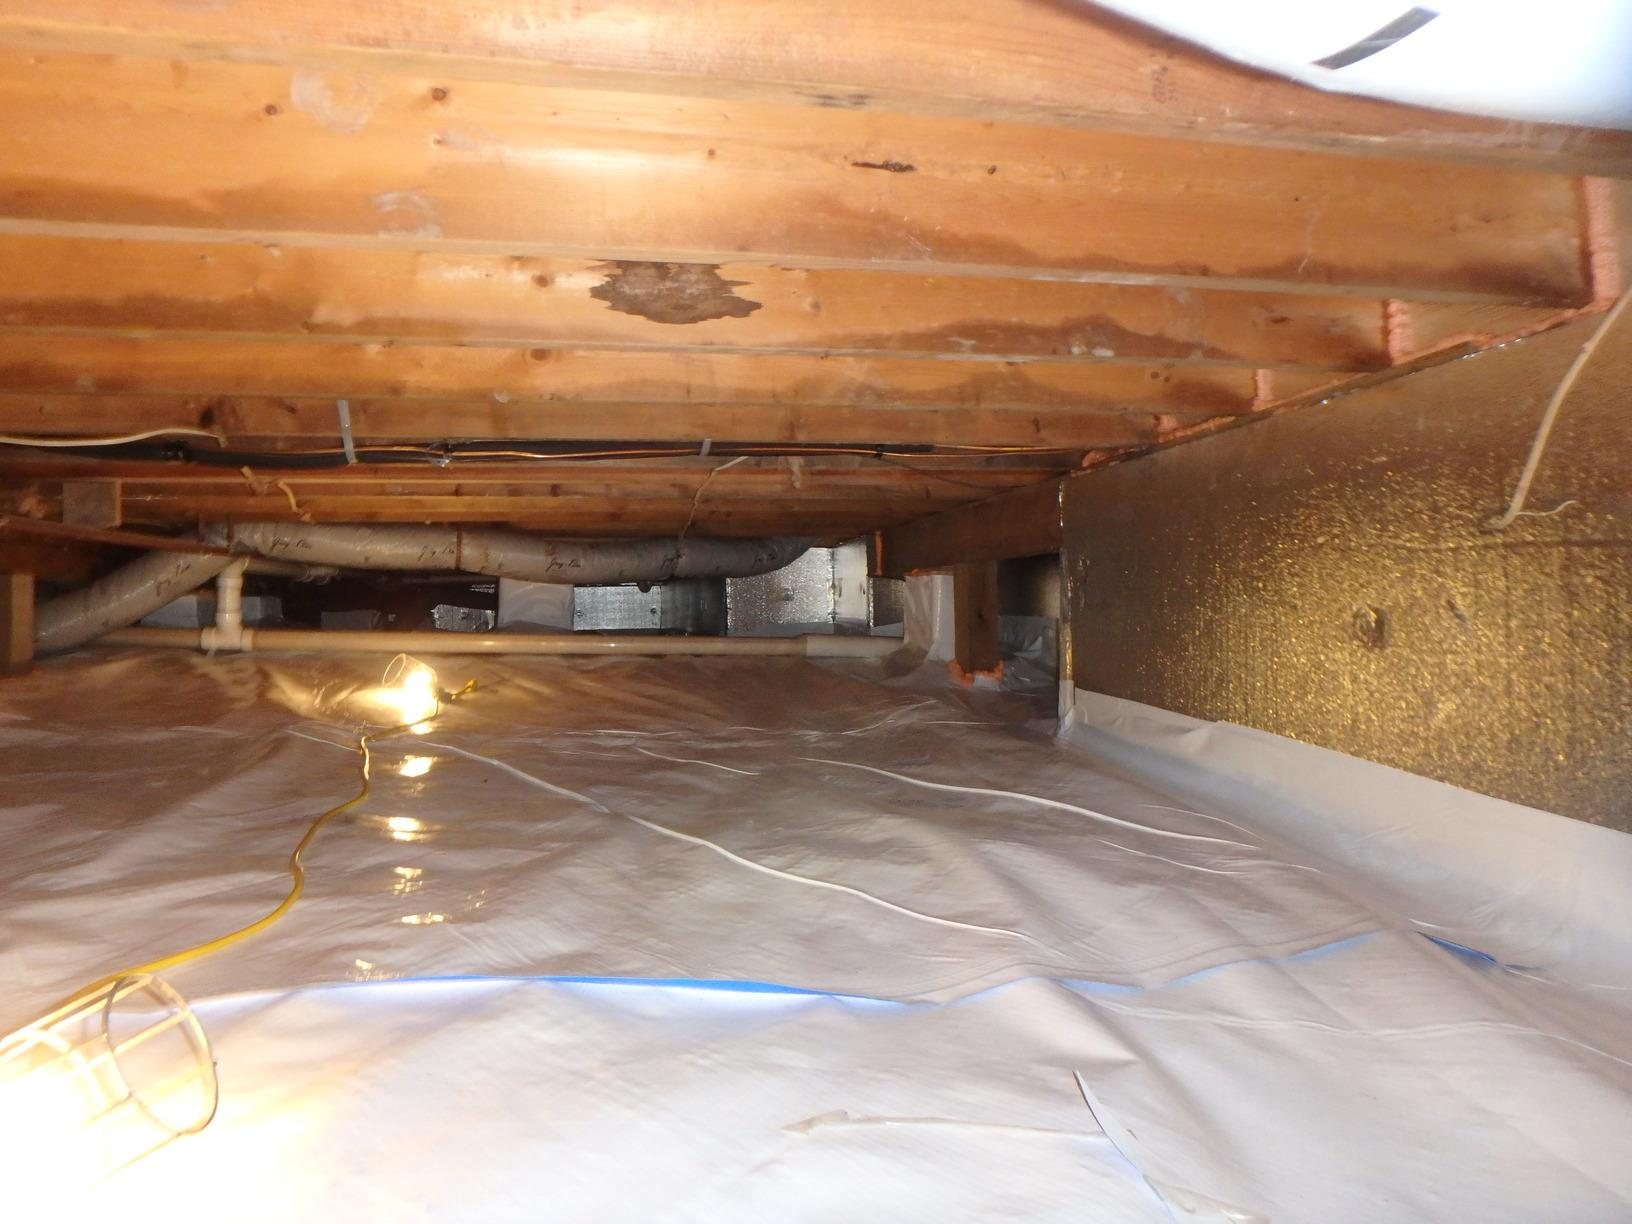 Crawl Space Encapsulation in Hedgesville, WV - After Photo